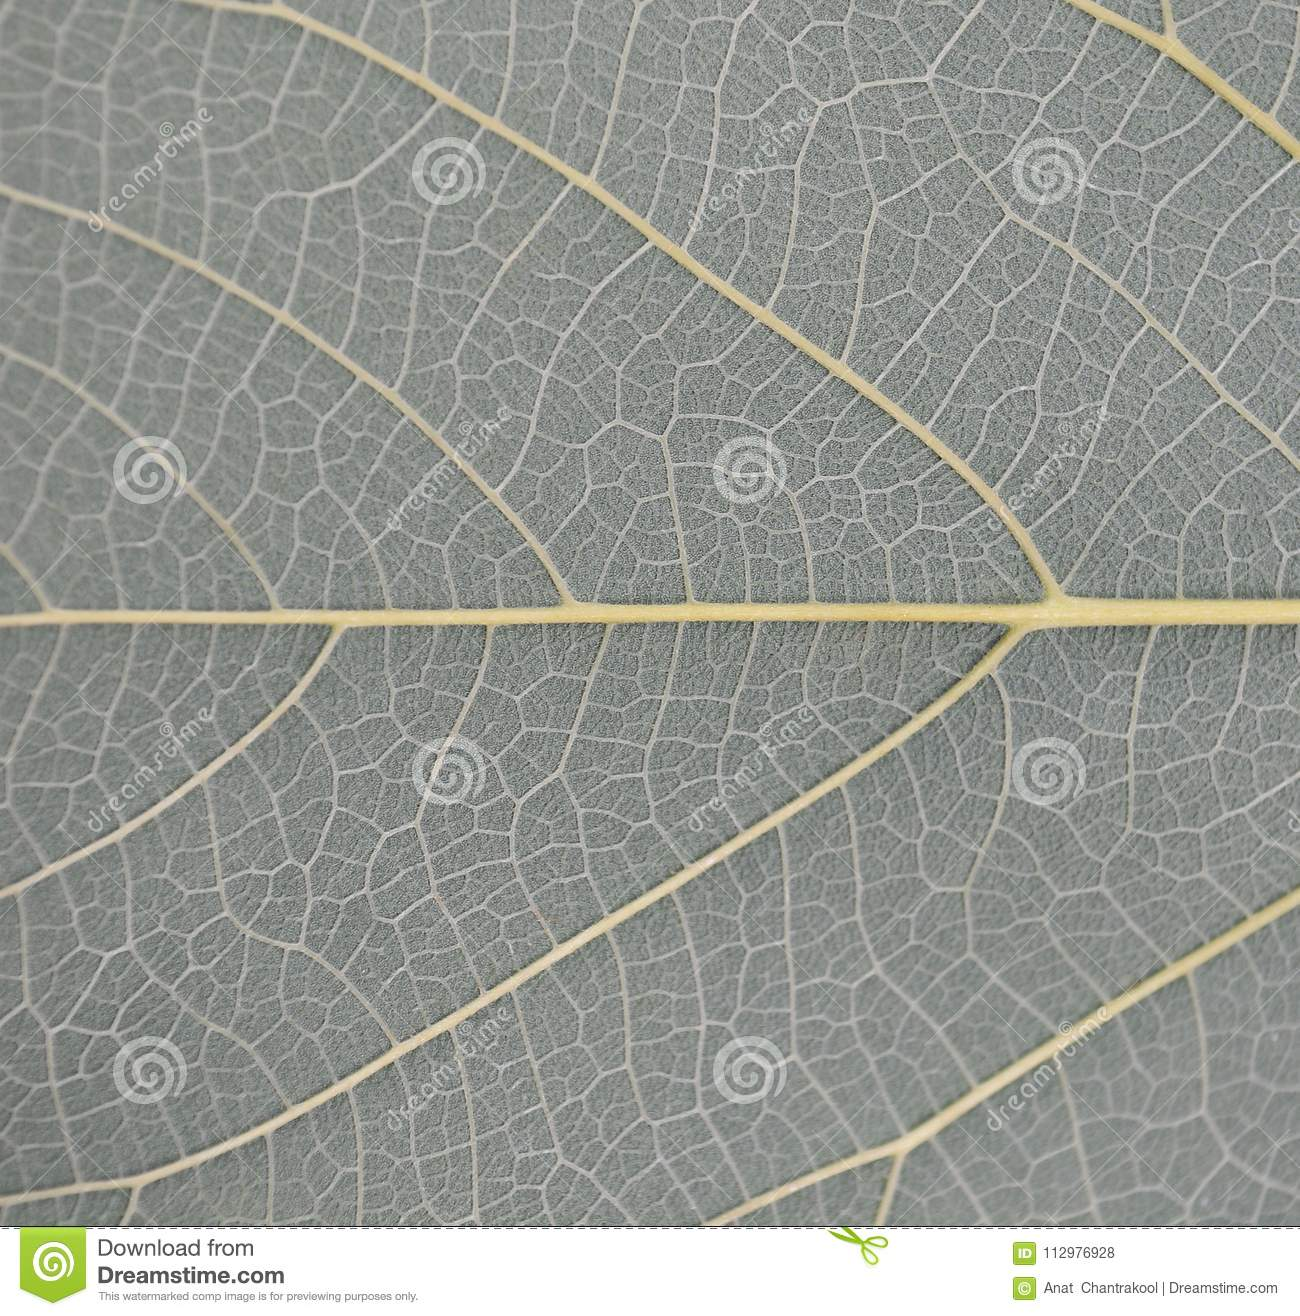 Pattern of leaves for the background.